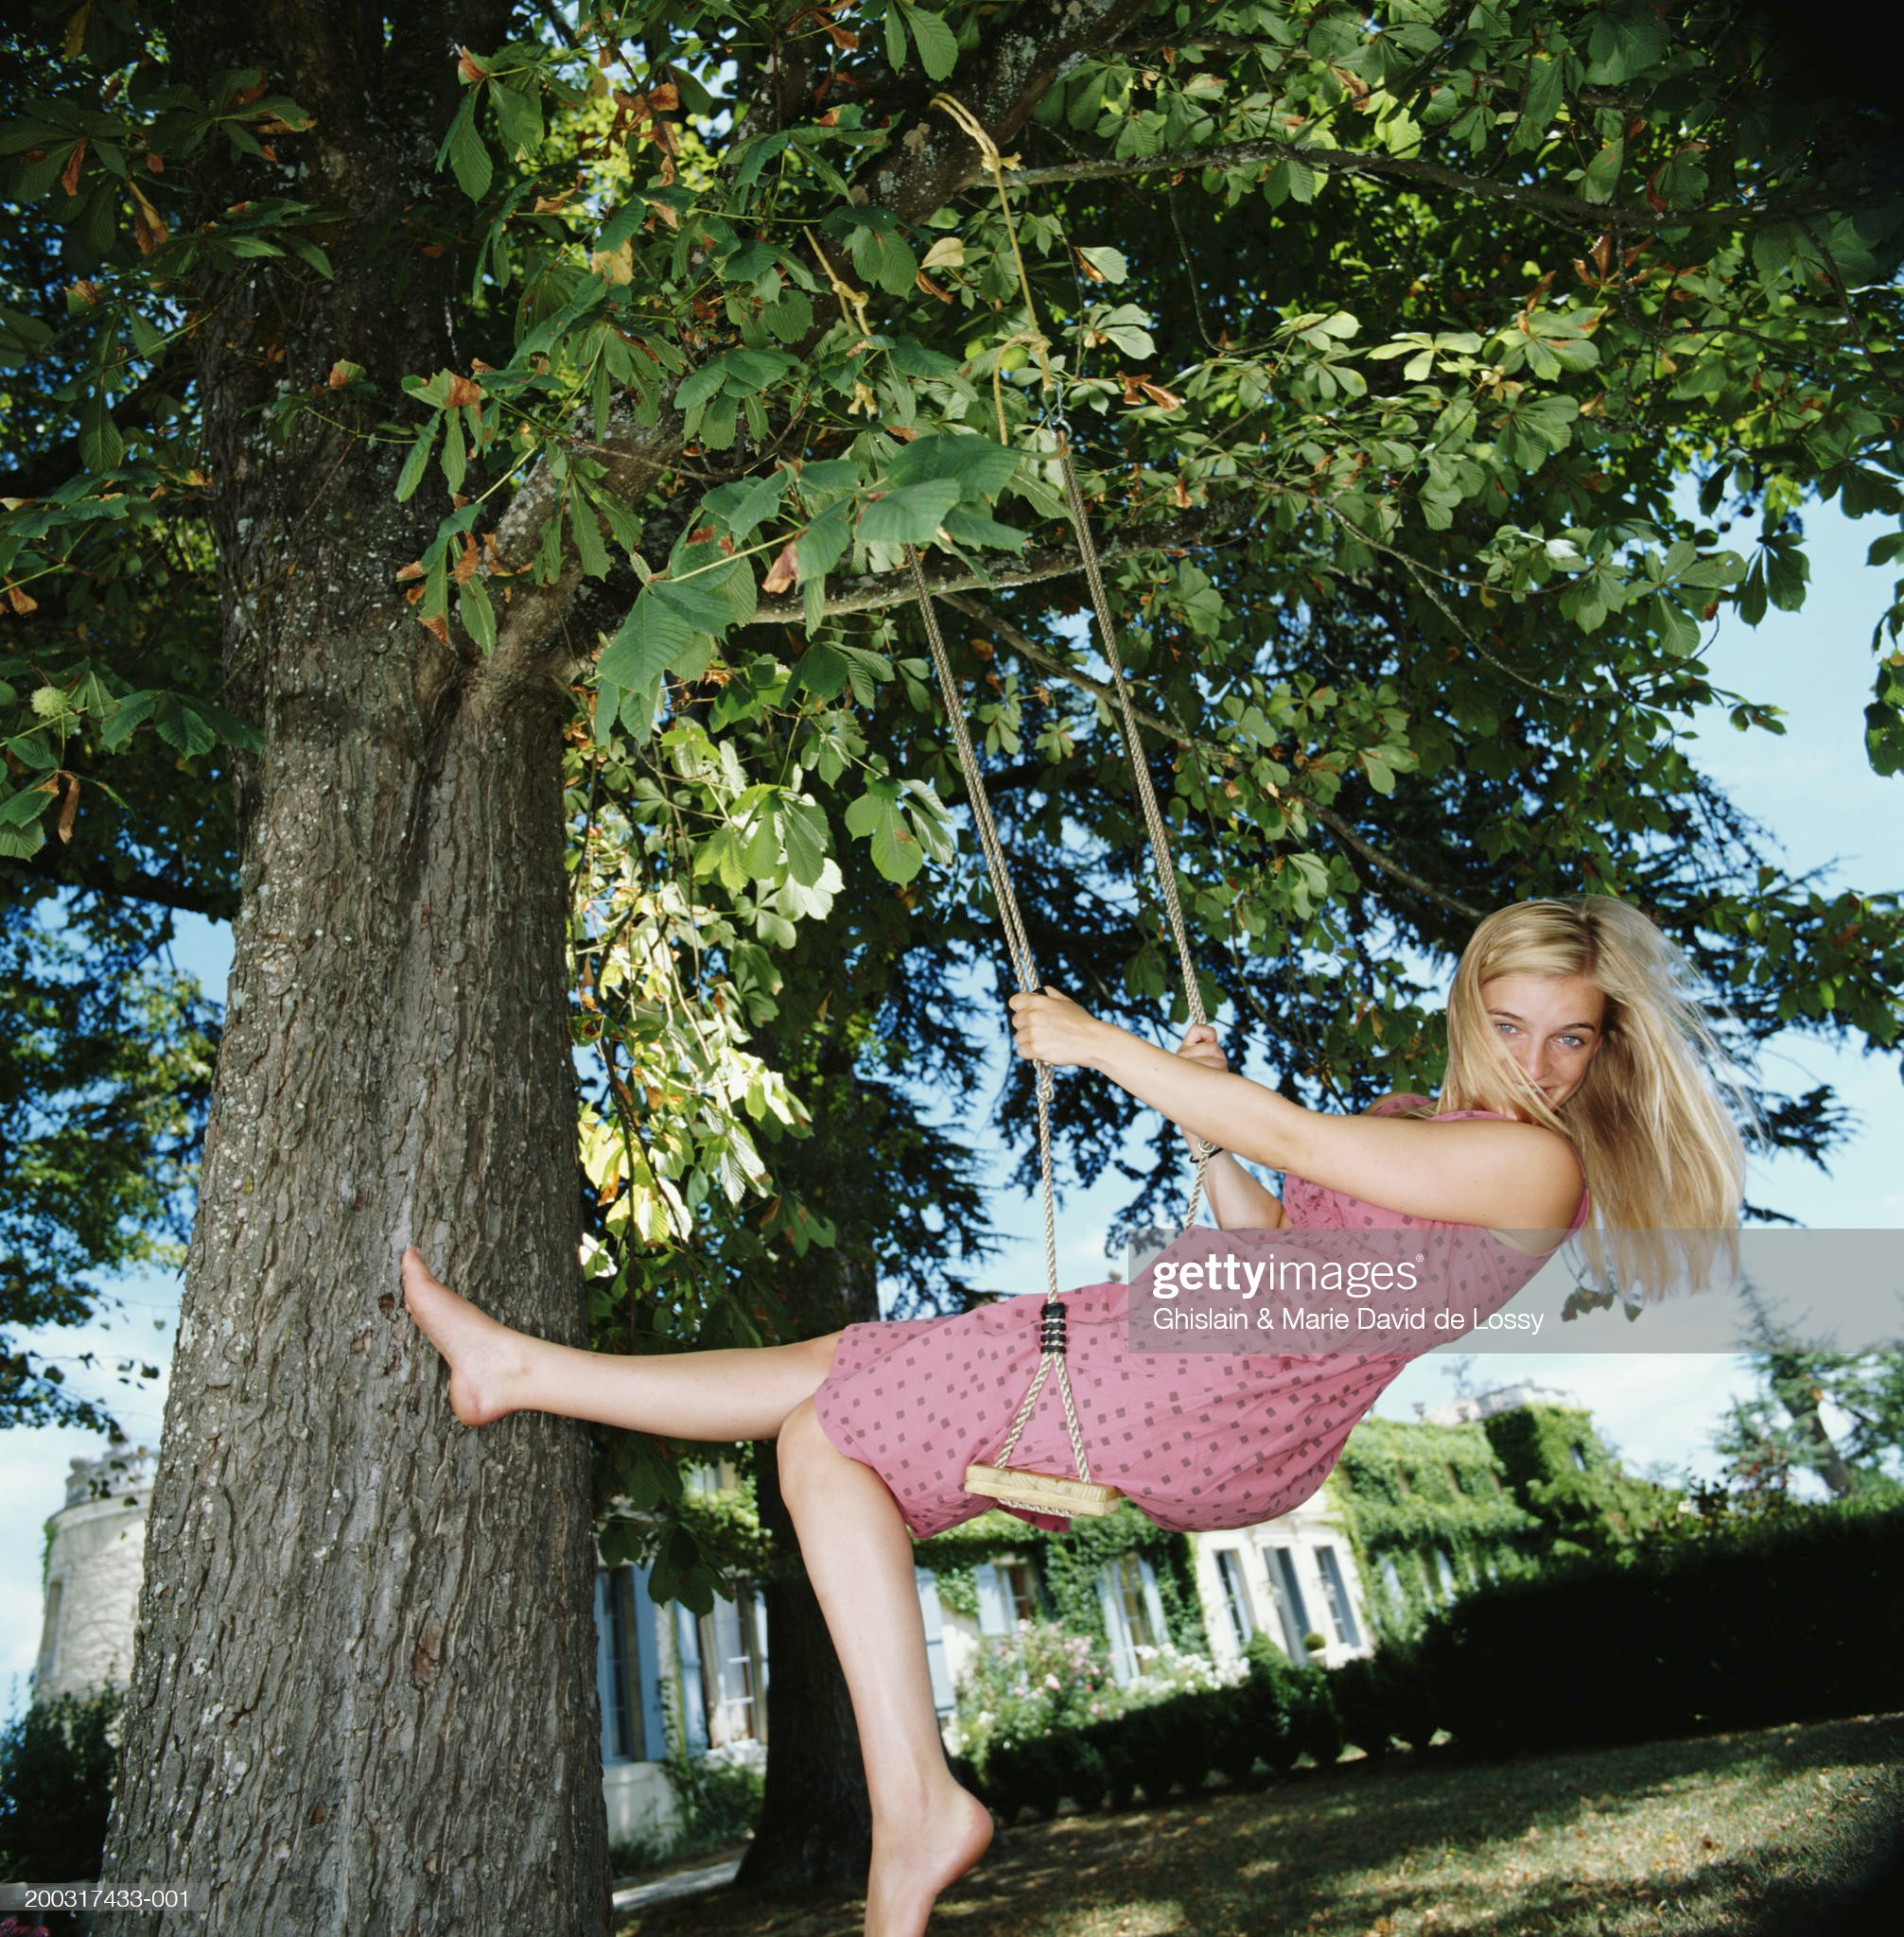 https://media.gettyimages.com/photos/young-woman-playing-on-swing-hung-from-tree-portrait-picture-id200317433-001?s=2048x2048